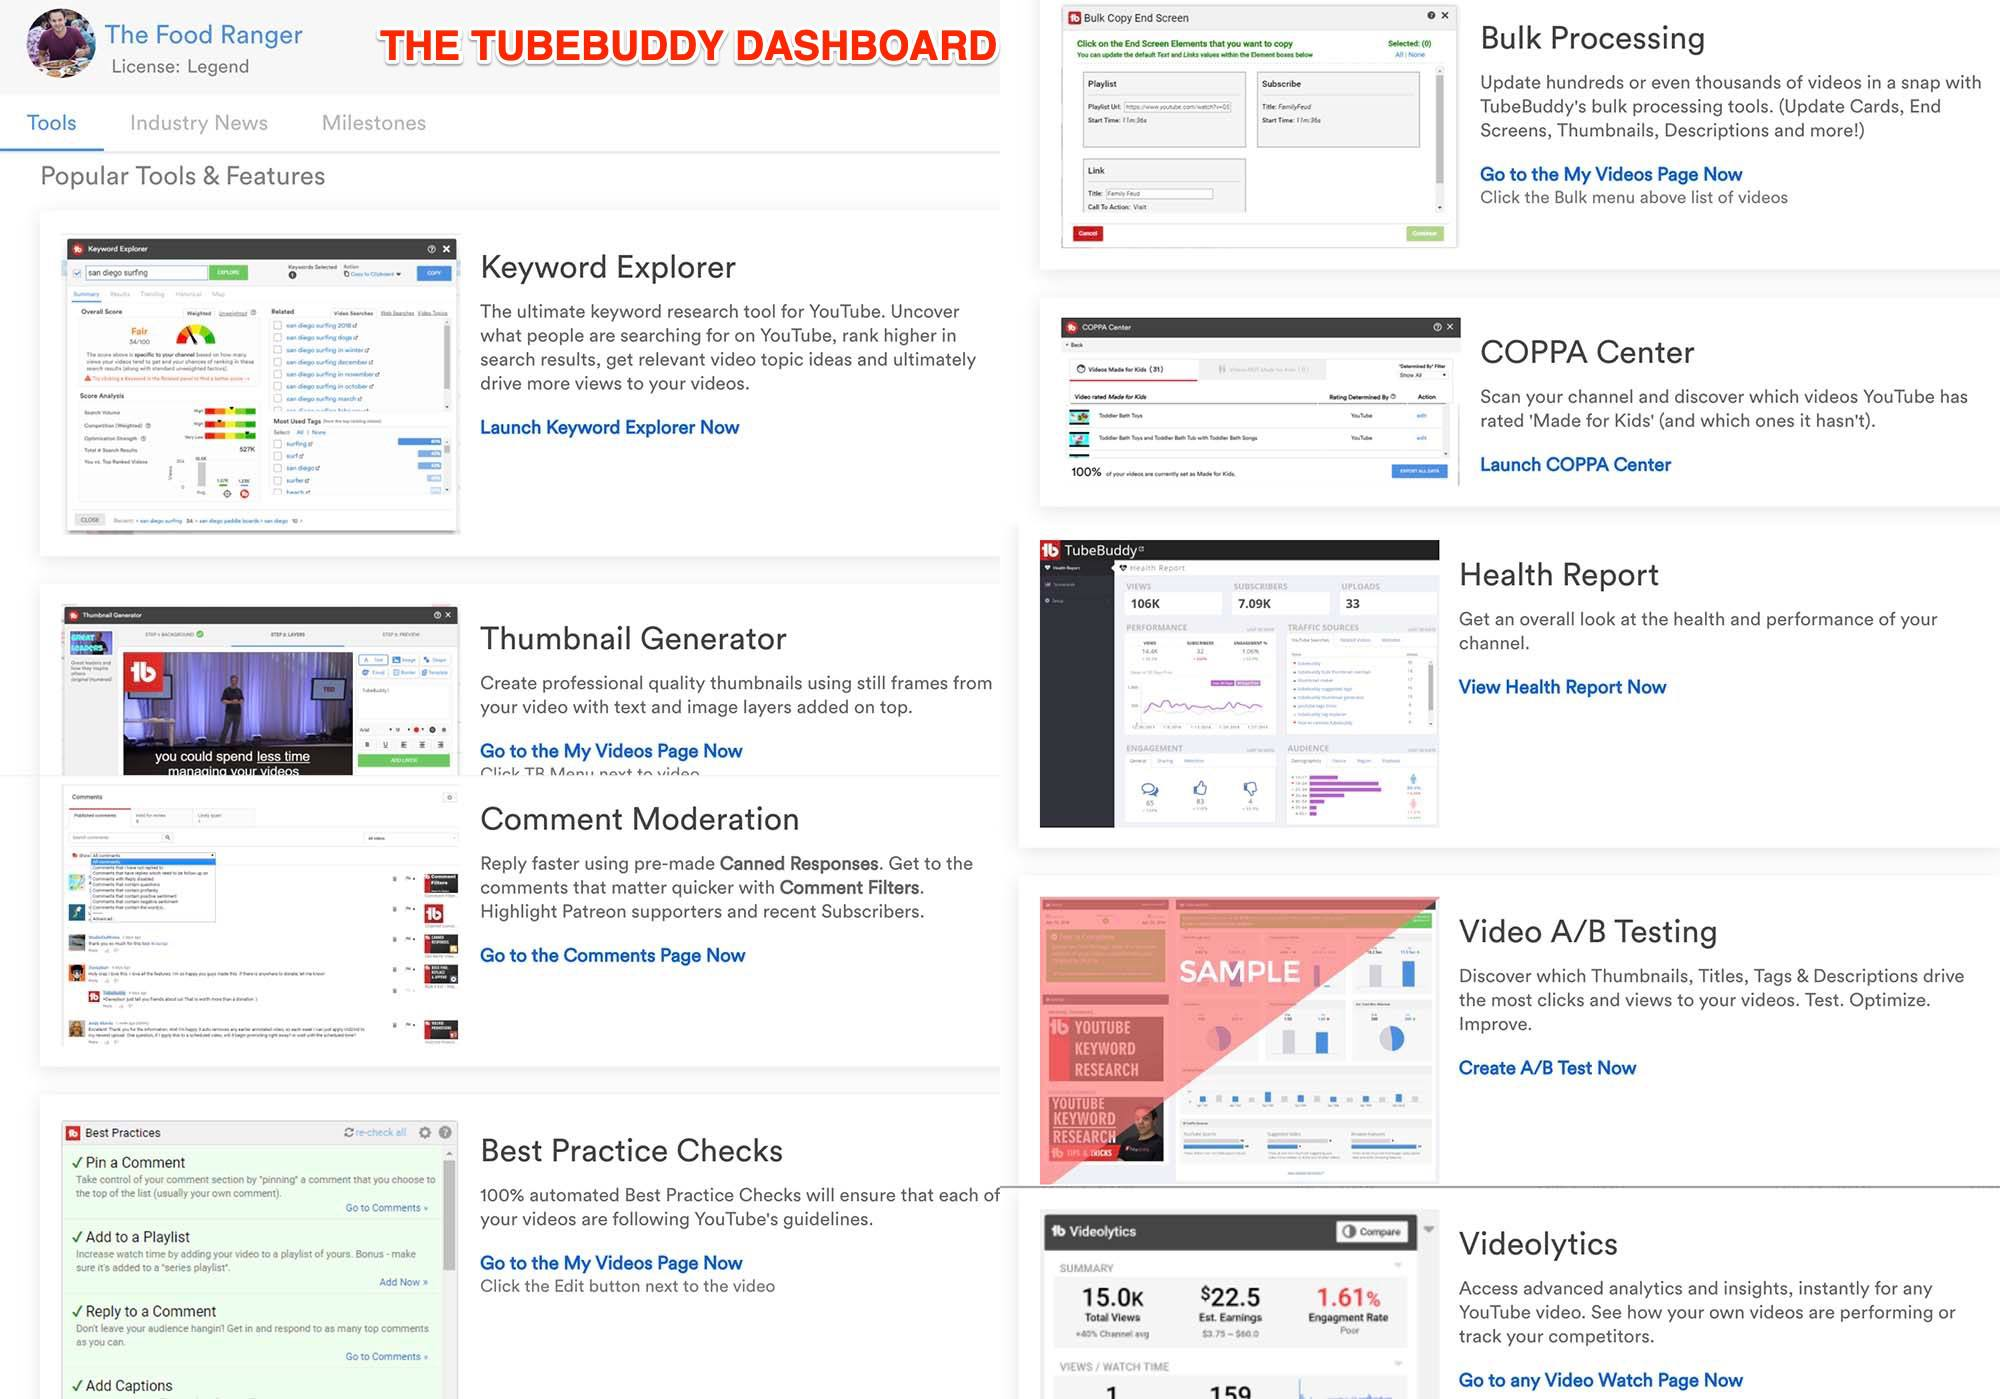 tubebuddy features and dashboard when the extension is installed on chrome